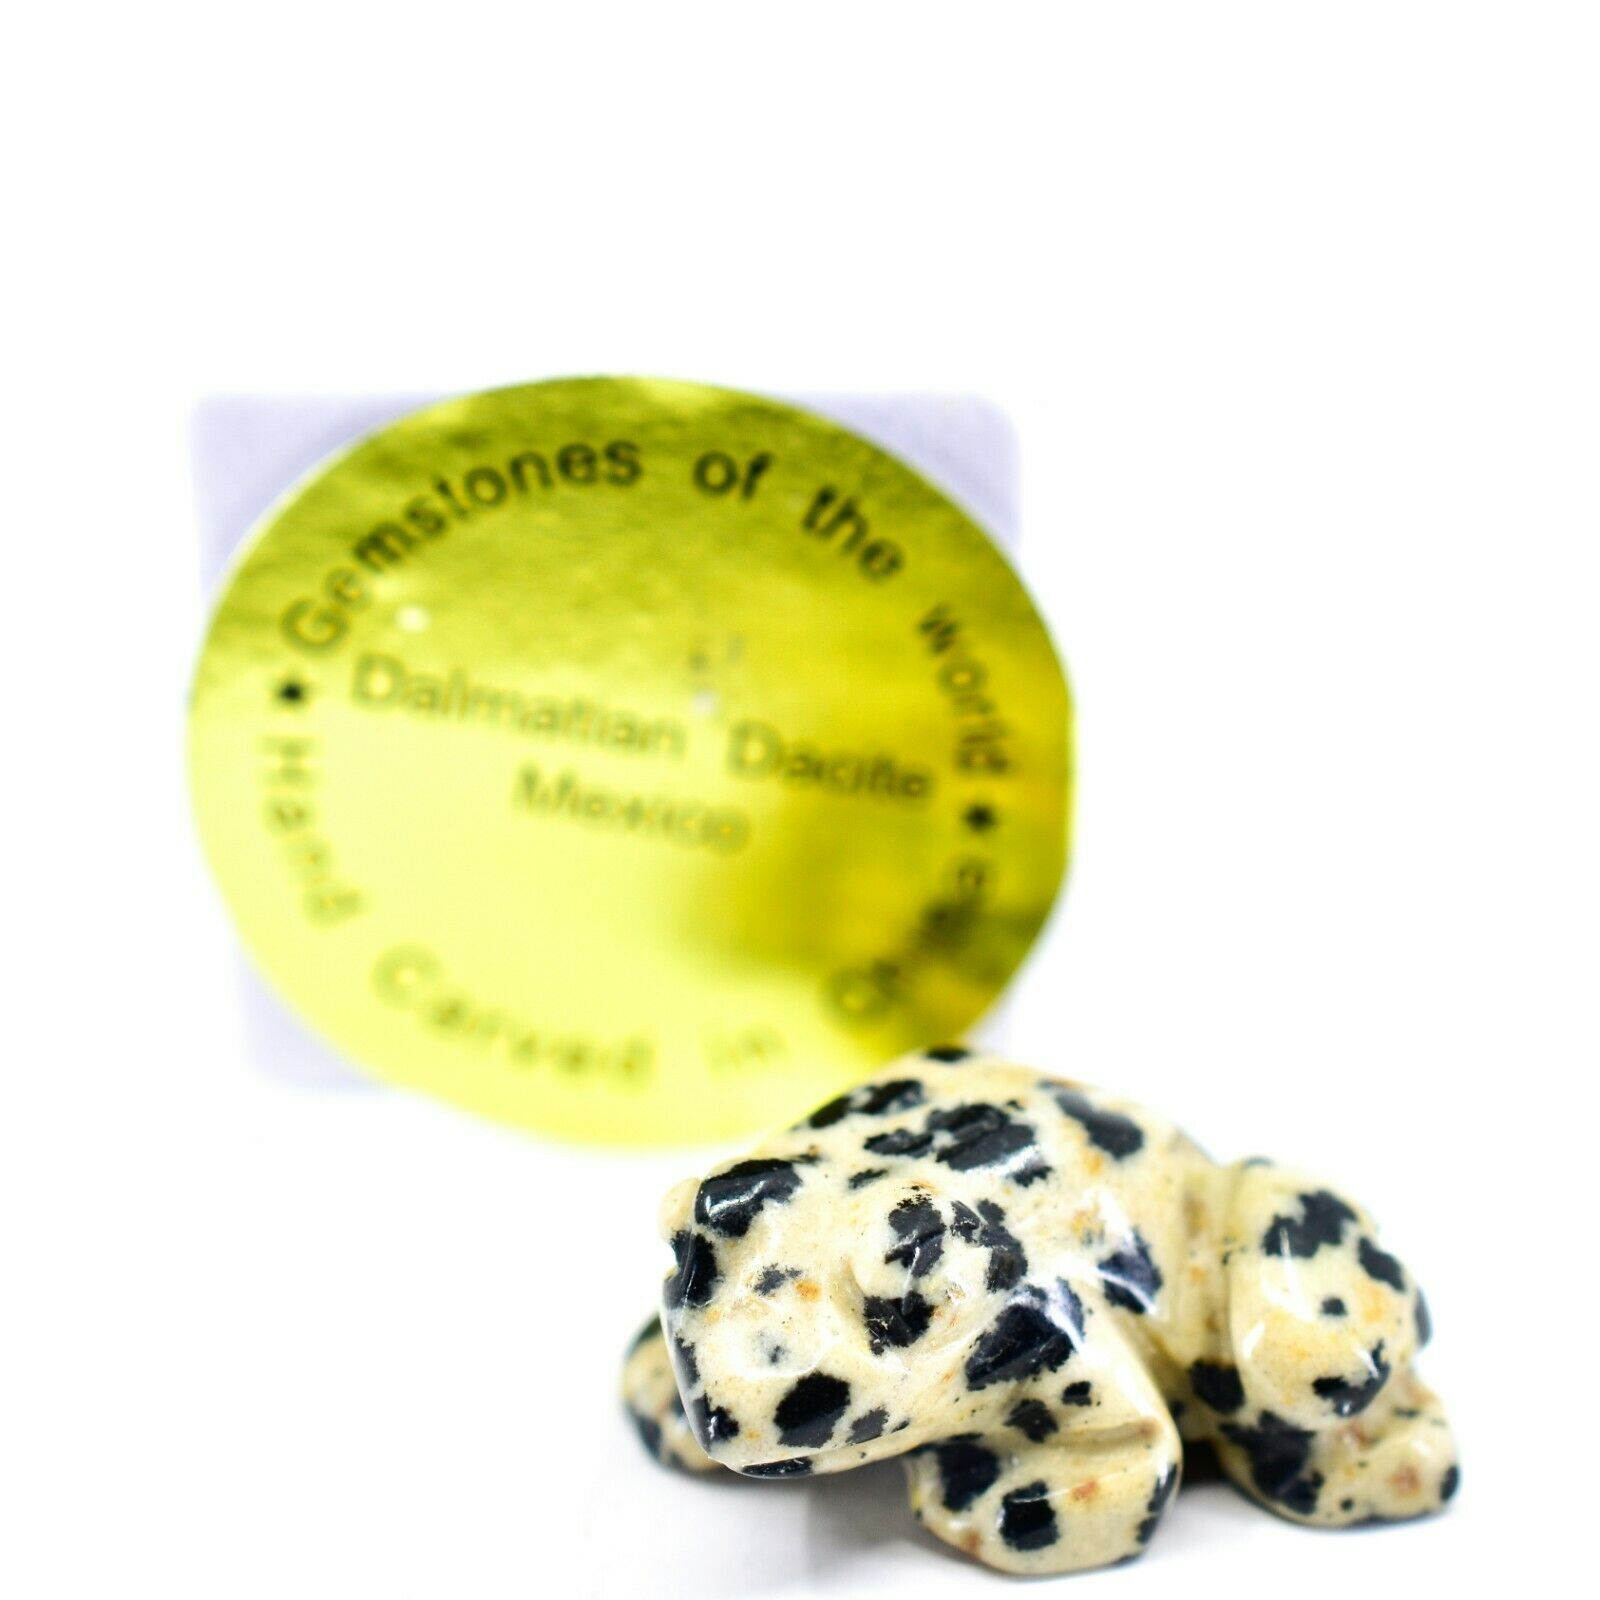 Dalmatian Dacite Gemstone Tiny Miniature Spotted Frog Figurine Hand Carved China